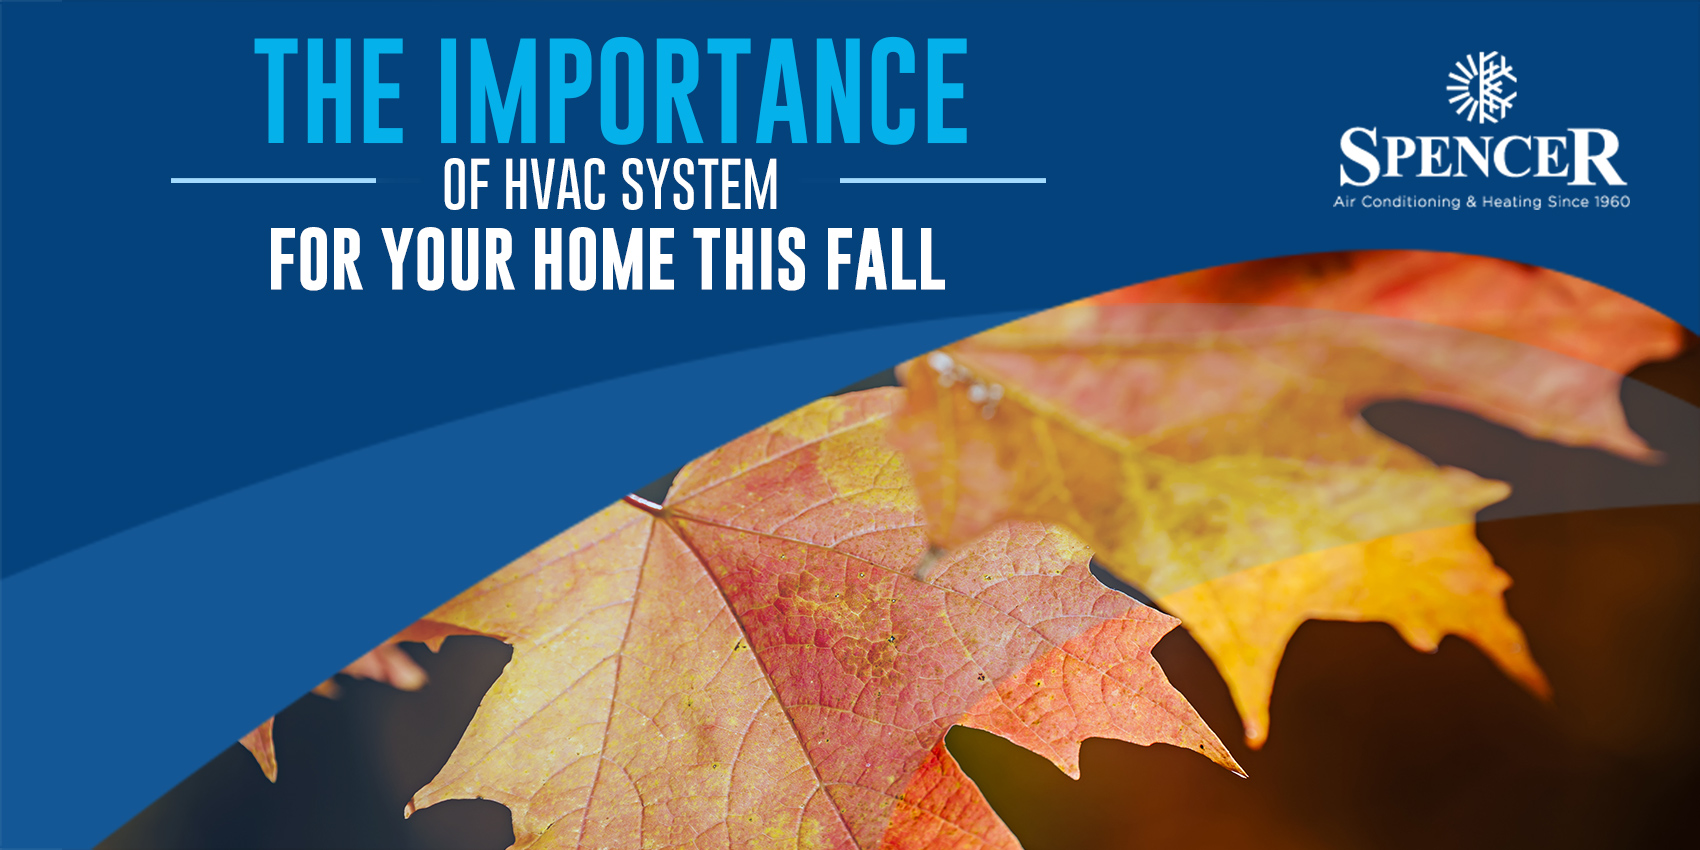 The Importance of HVAC System for Your Home This Fall